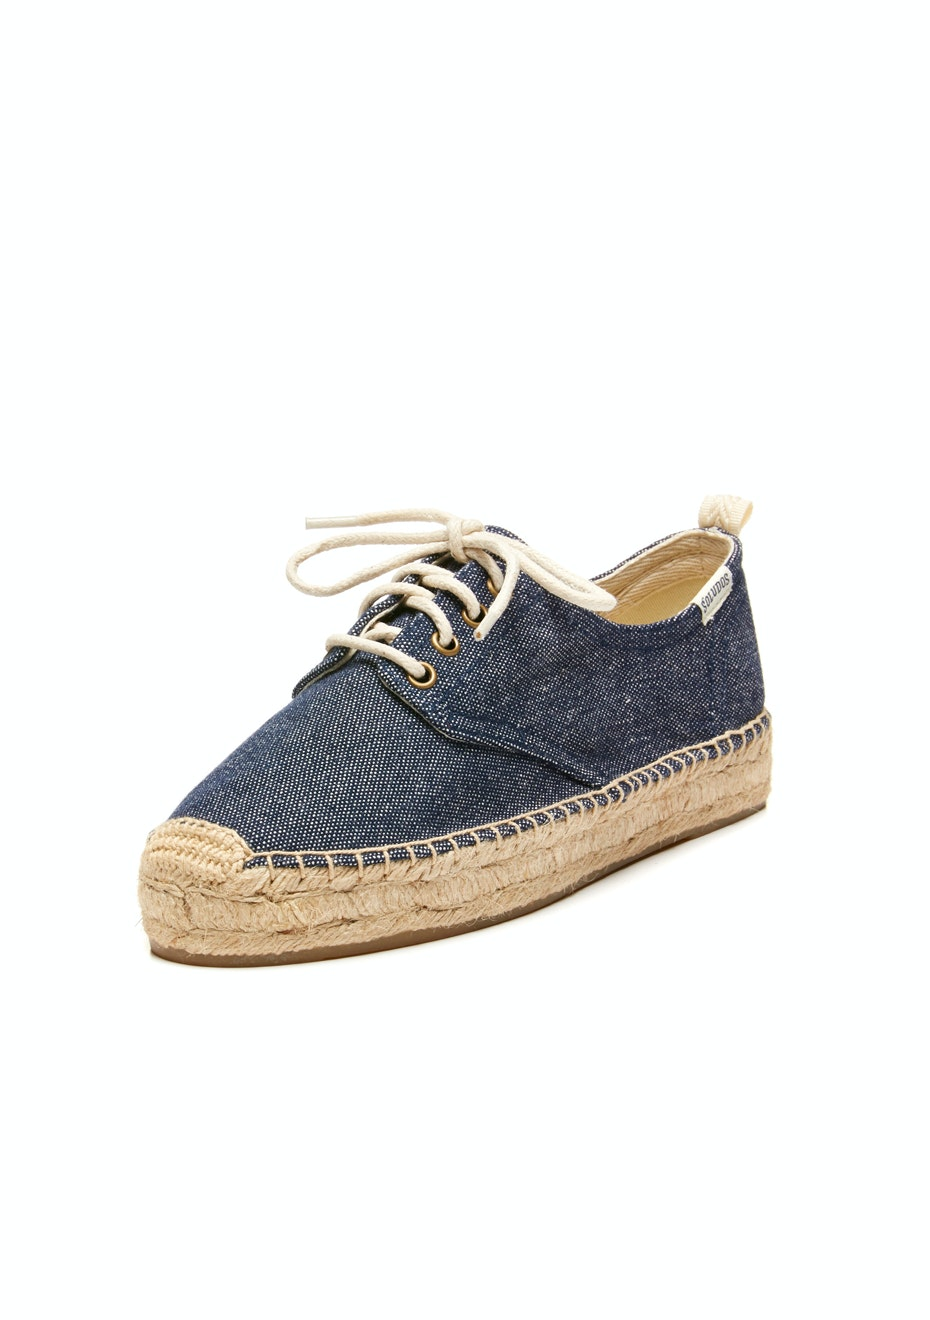 Soludos - Oxford Lace-Up Platform - dark denim